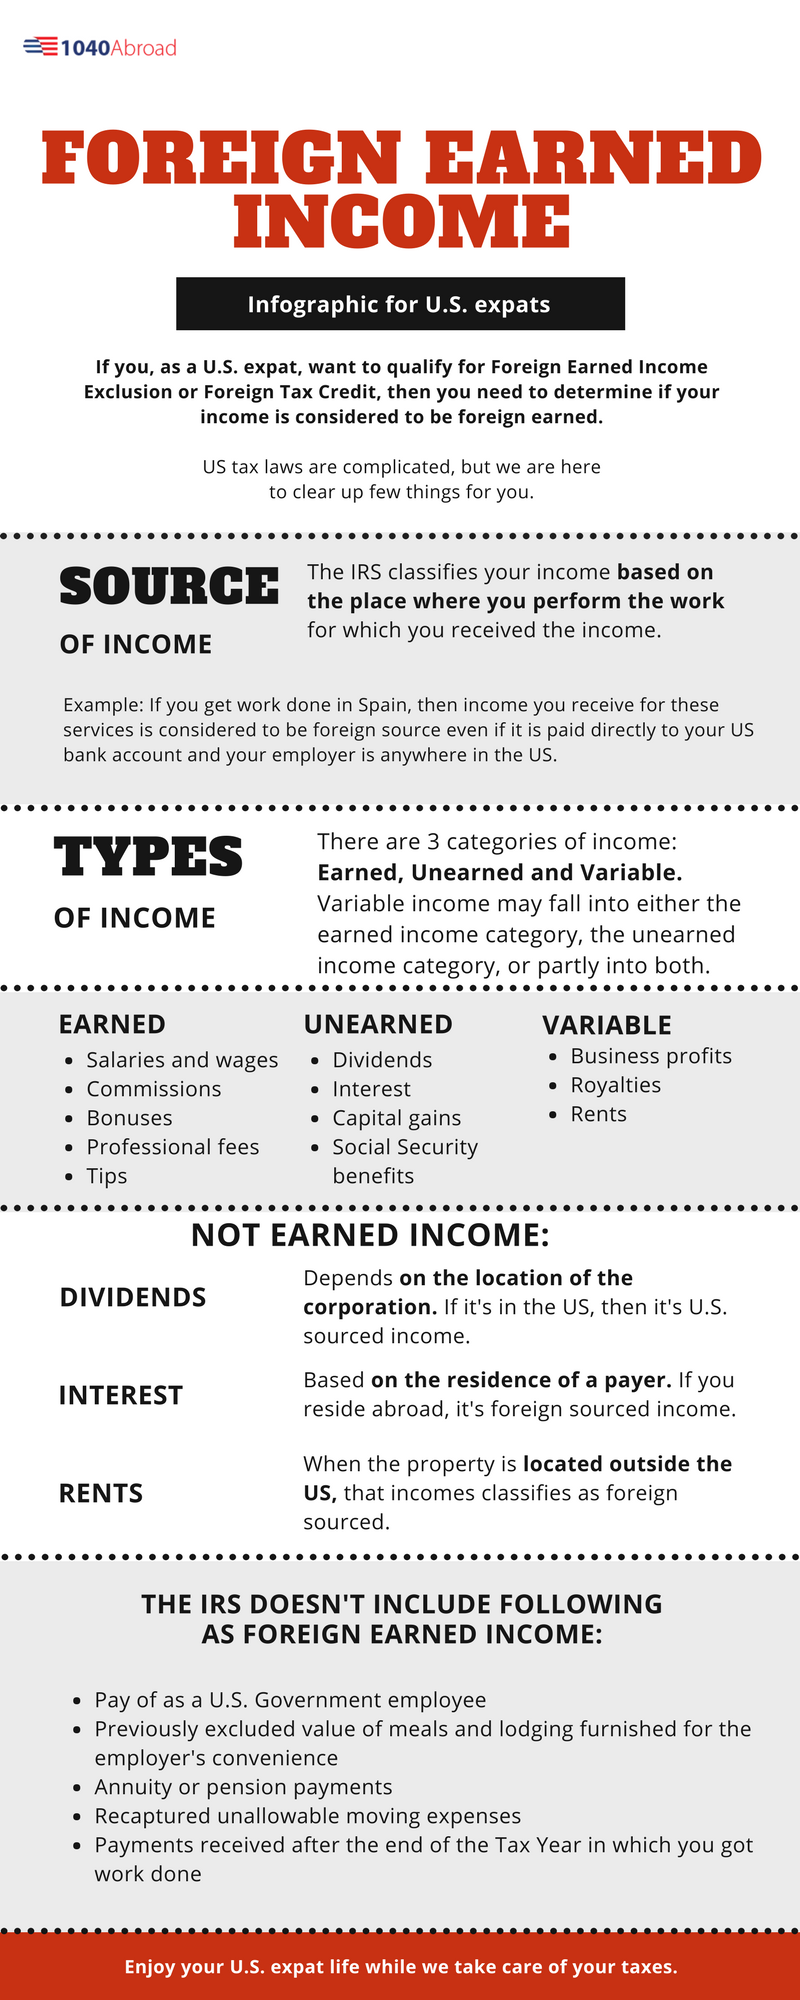 What is a Foreign Earned Income for US expats infographic